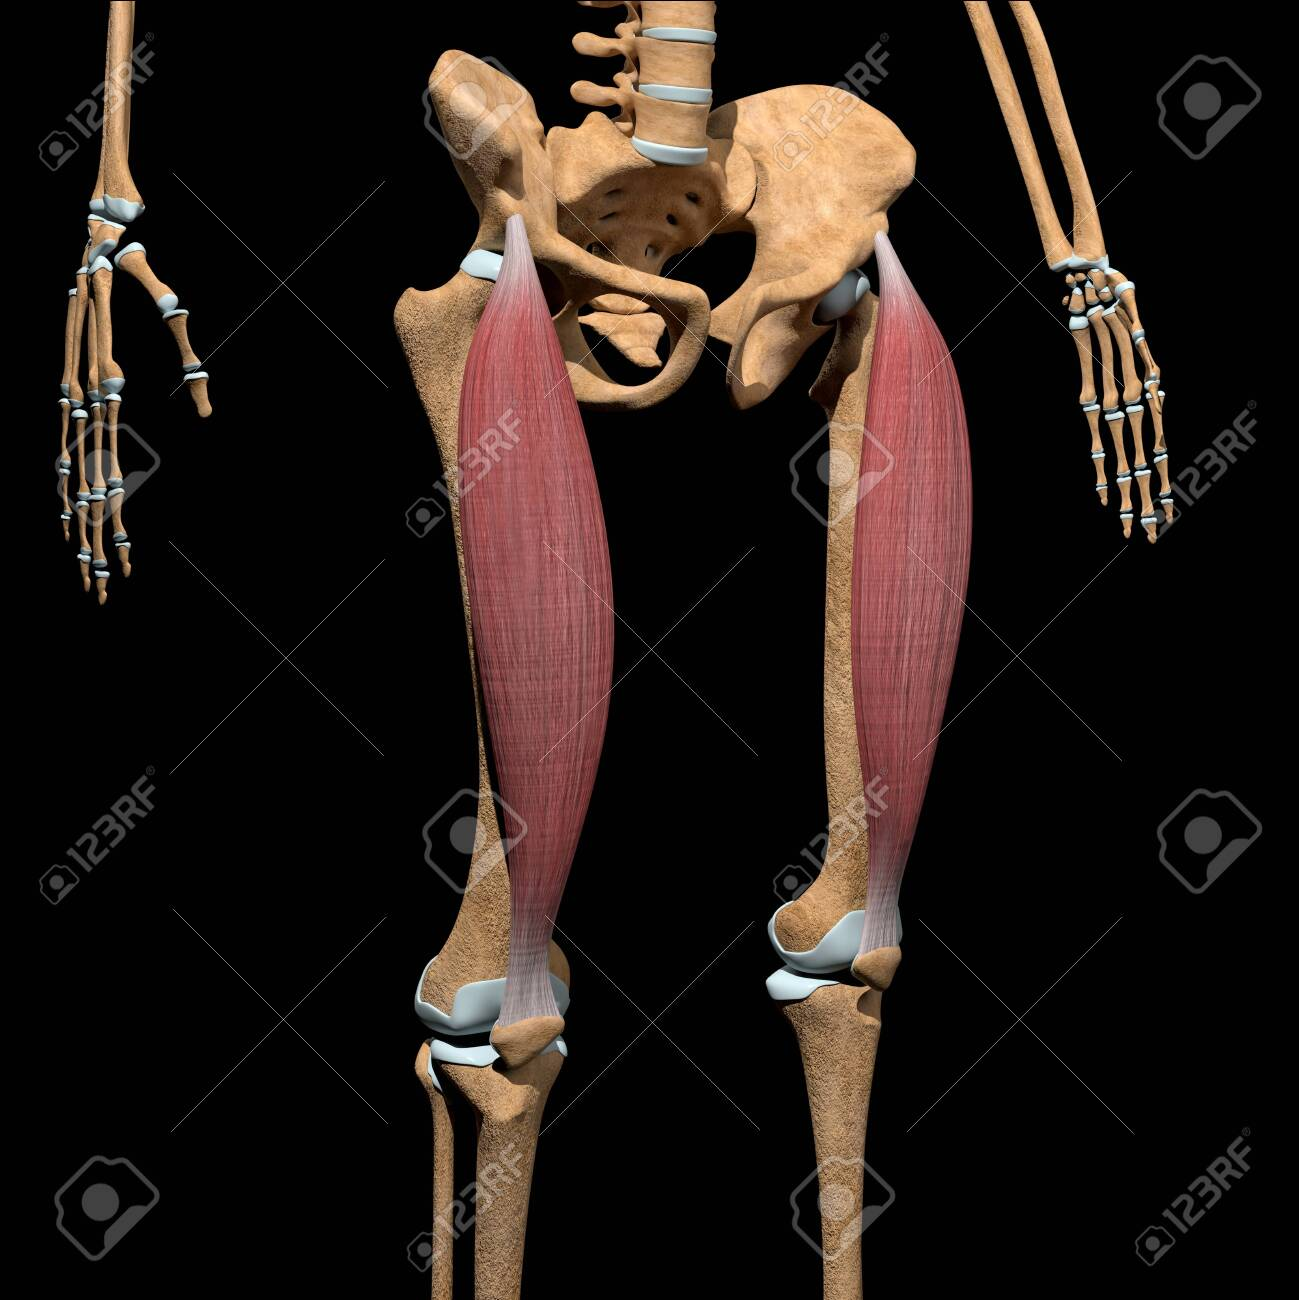 This 3d illustration shows the rectus femoris muscles on skeleton - 141625590